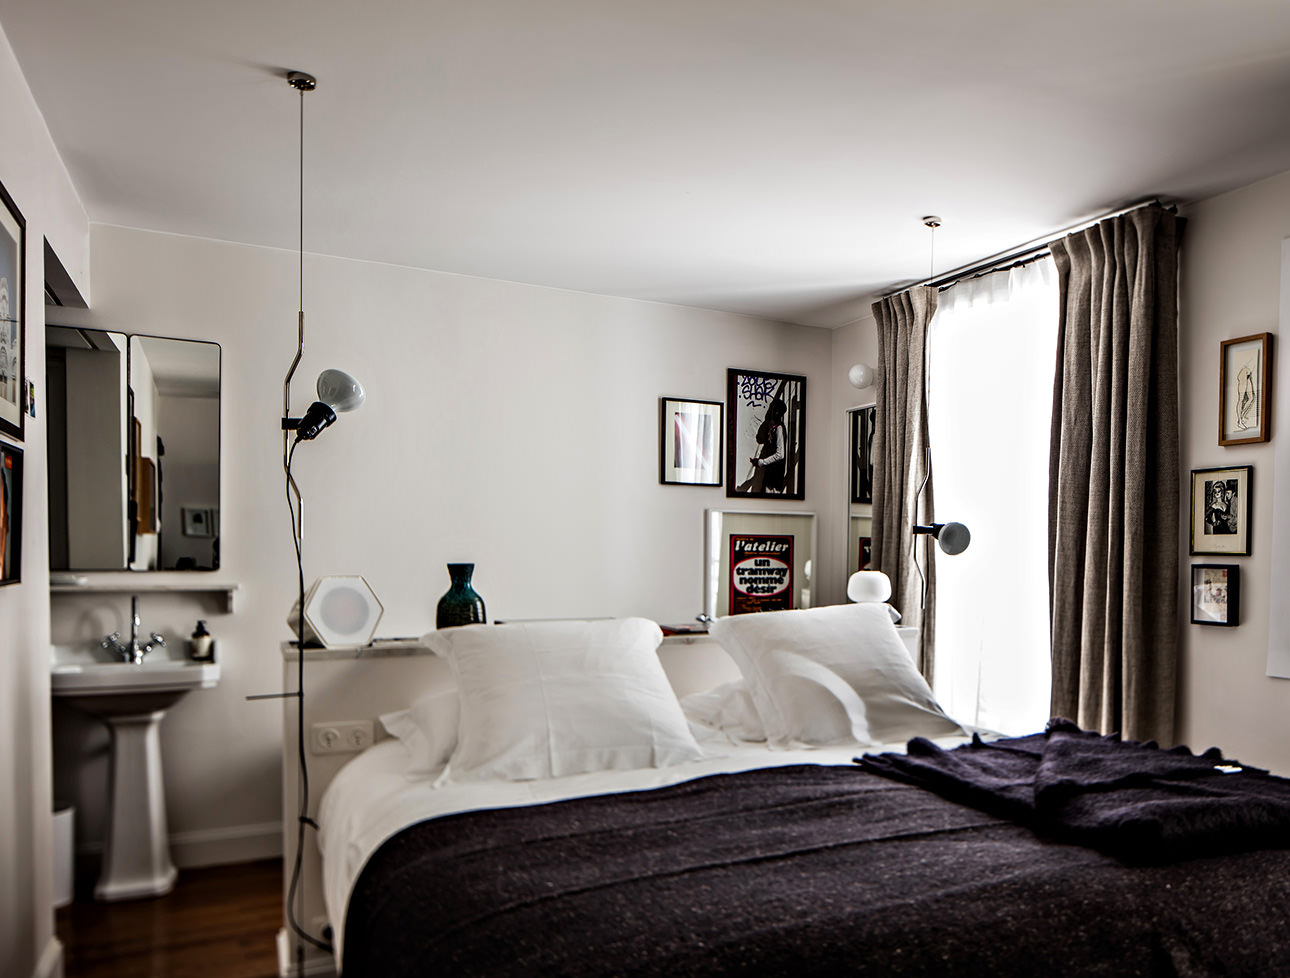 e-pigalle-parisian-hotel-room-decor